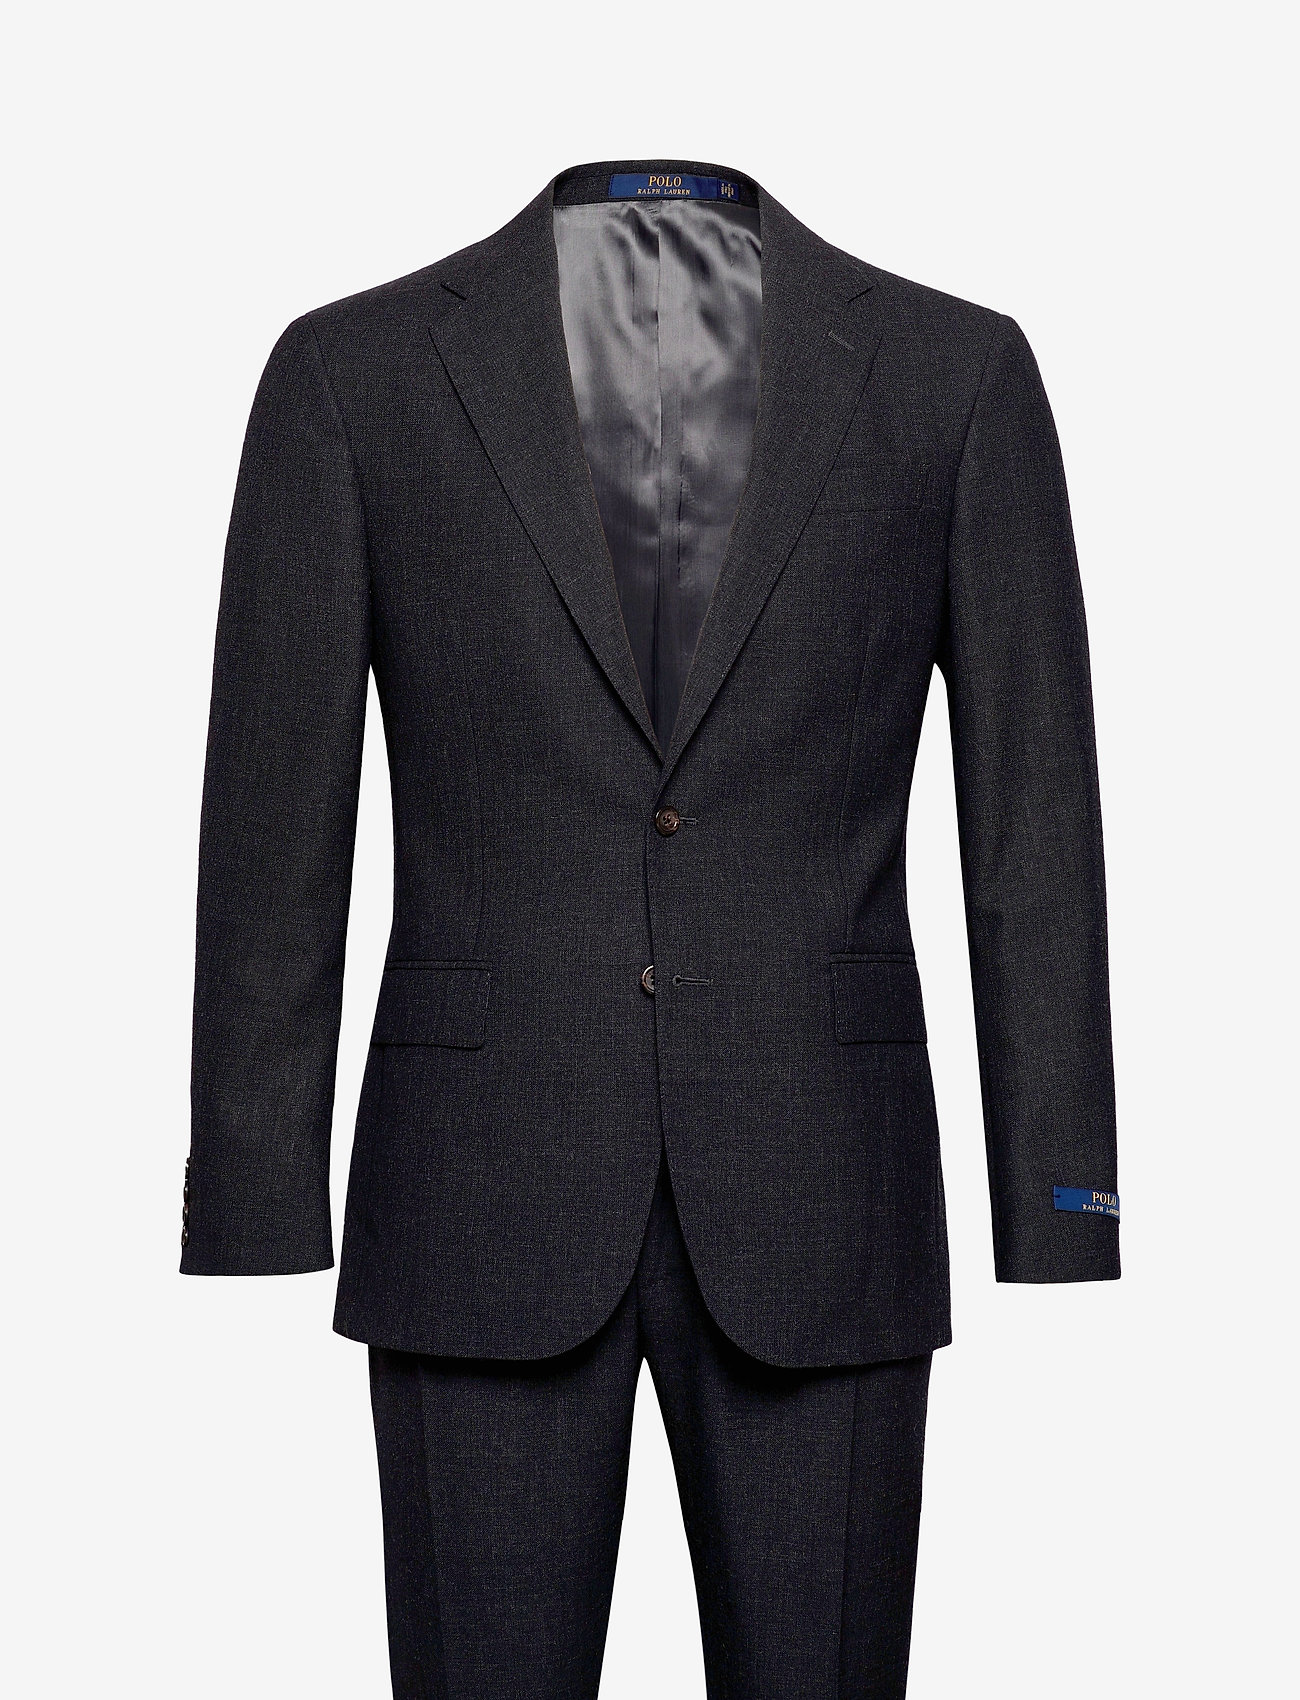 Polo Ralph Lauren - FRESCO-POLO 2B NTCH UC SNGL - suits - charcoal - 0